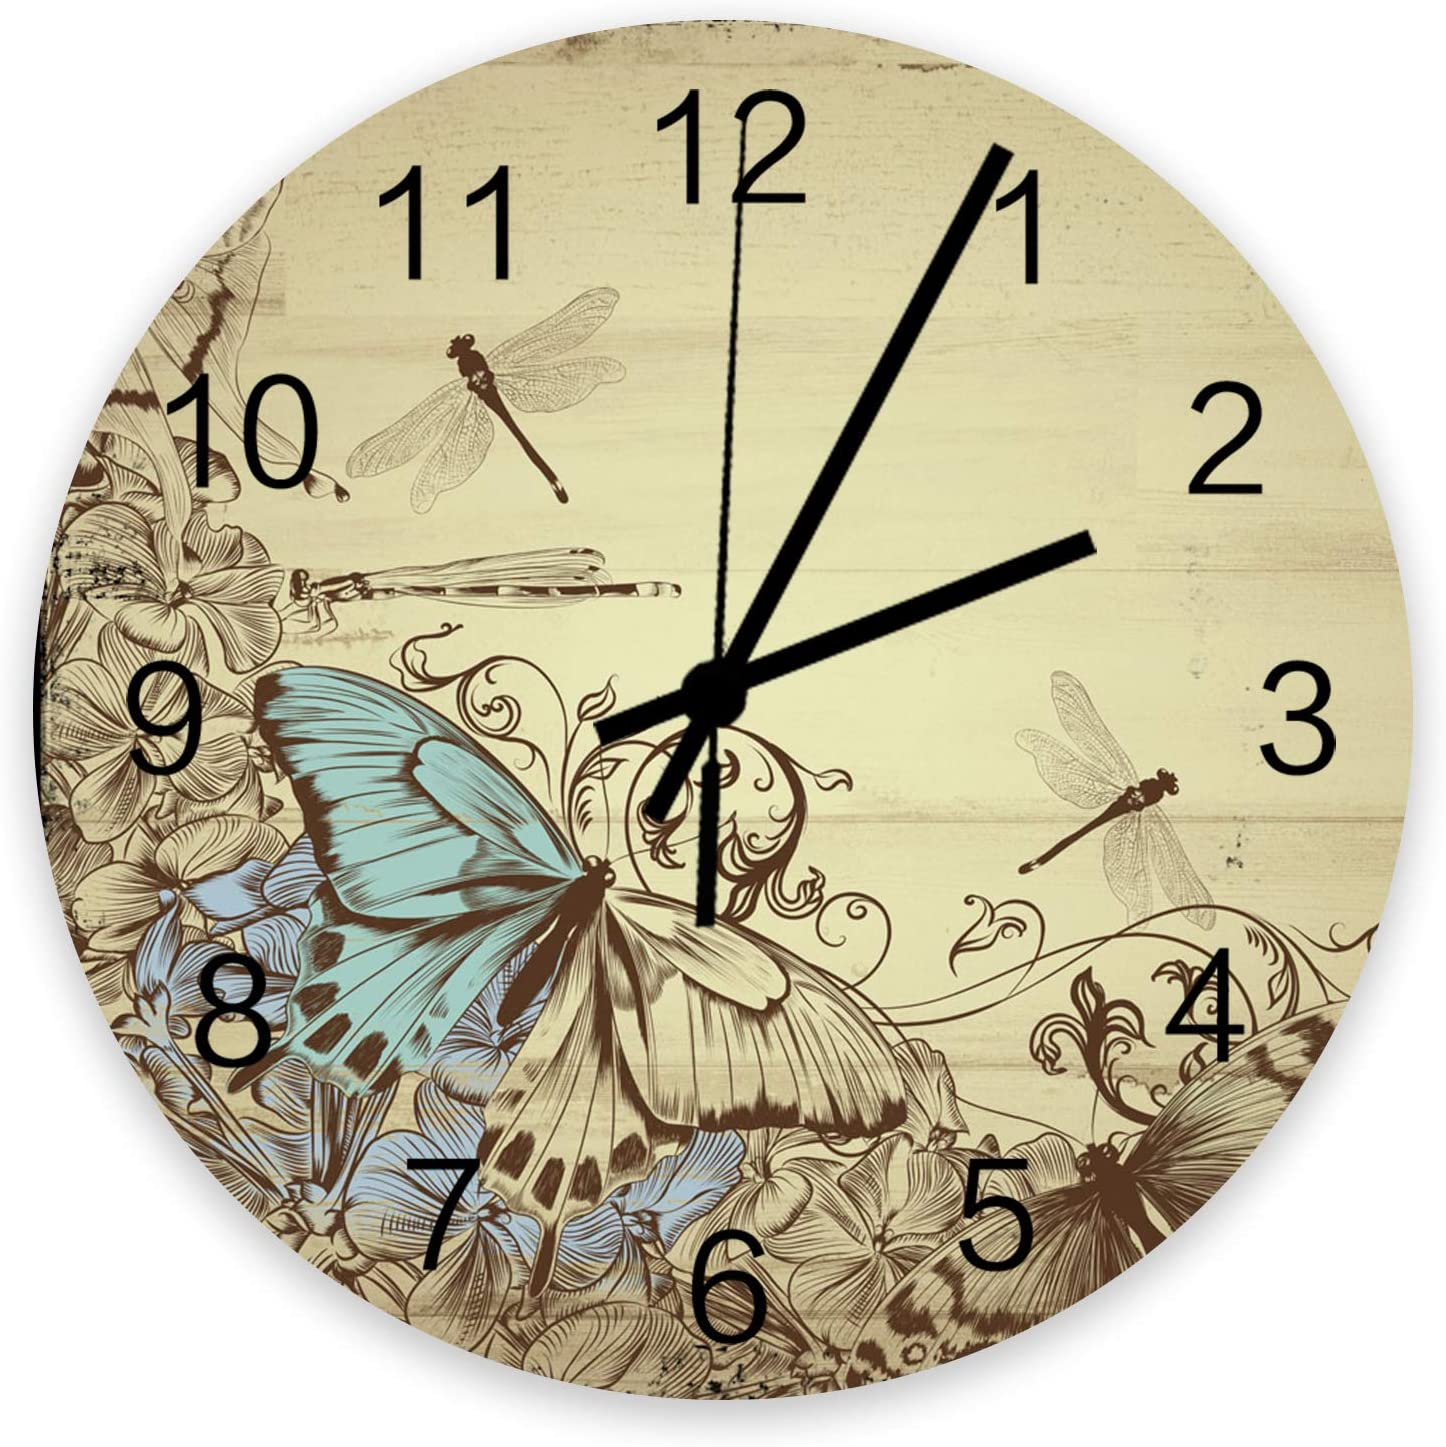 Wooden Wall Clock Abstract Ranking TOP13 Butterfly Rustic Wood Dragonfly Japan Maker New Line